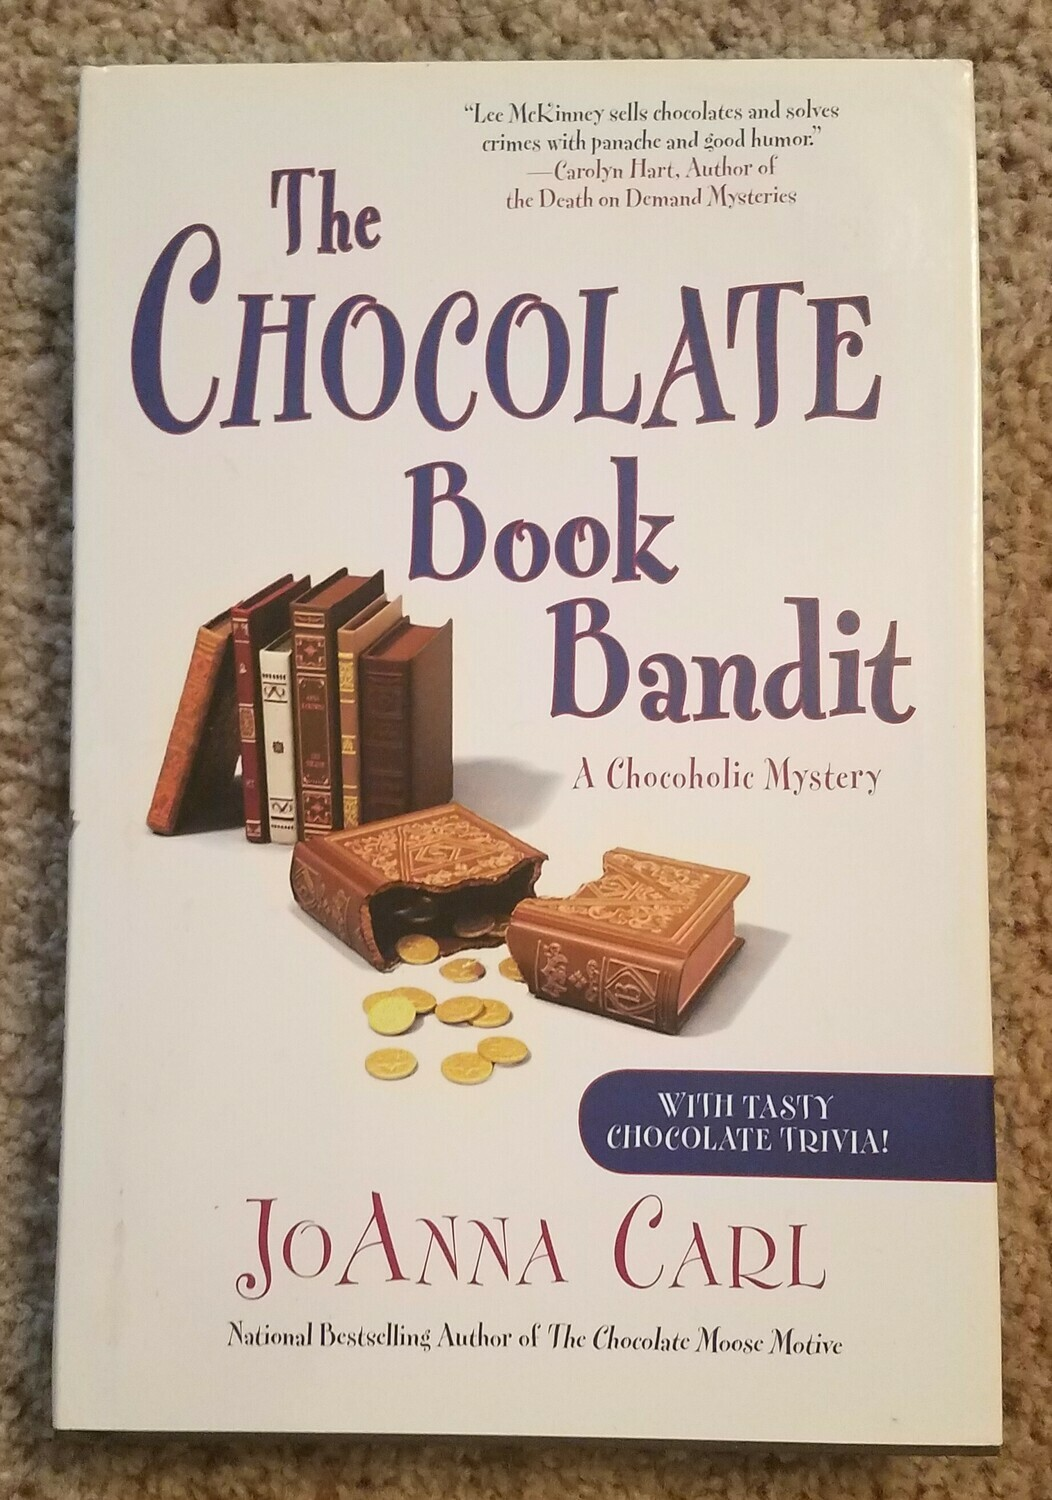 The Chocolate Book Bandit by JoAnna Carl